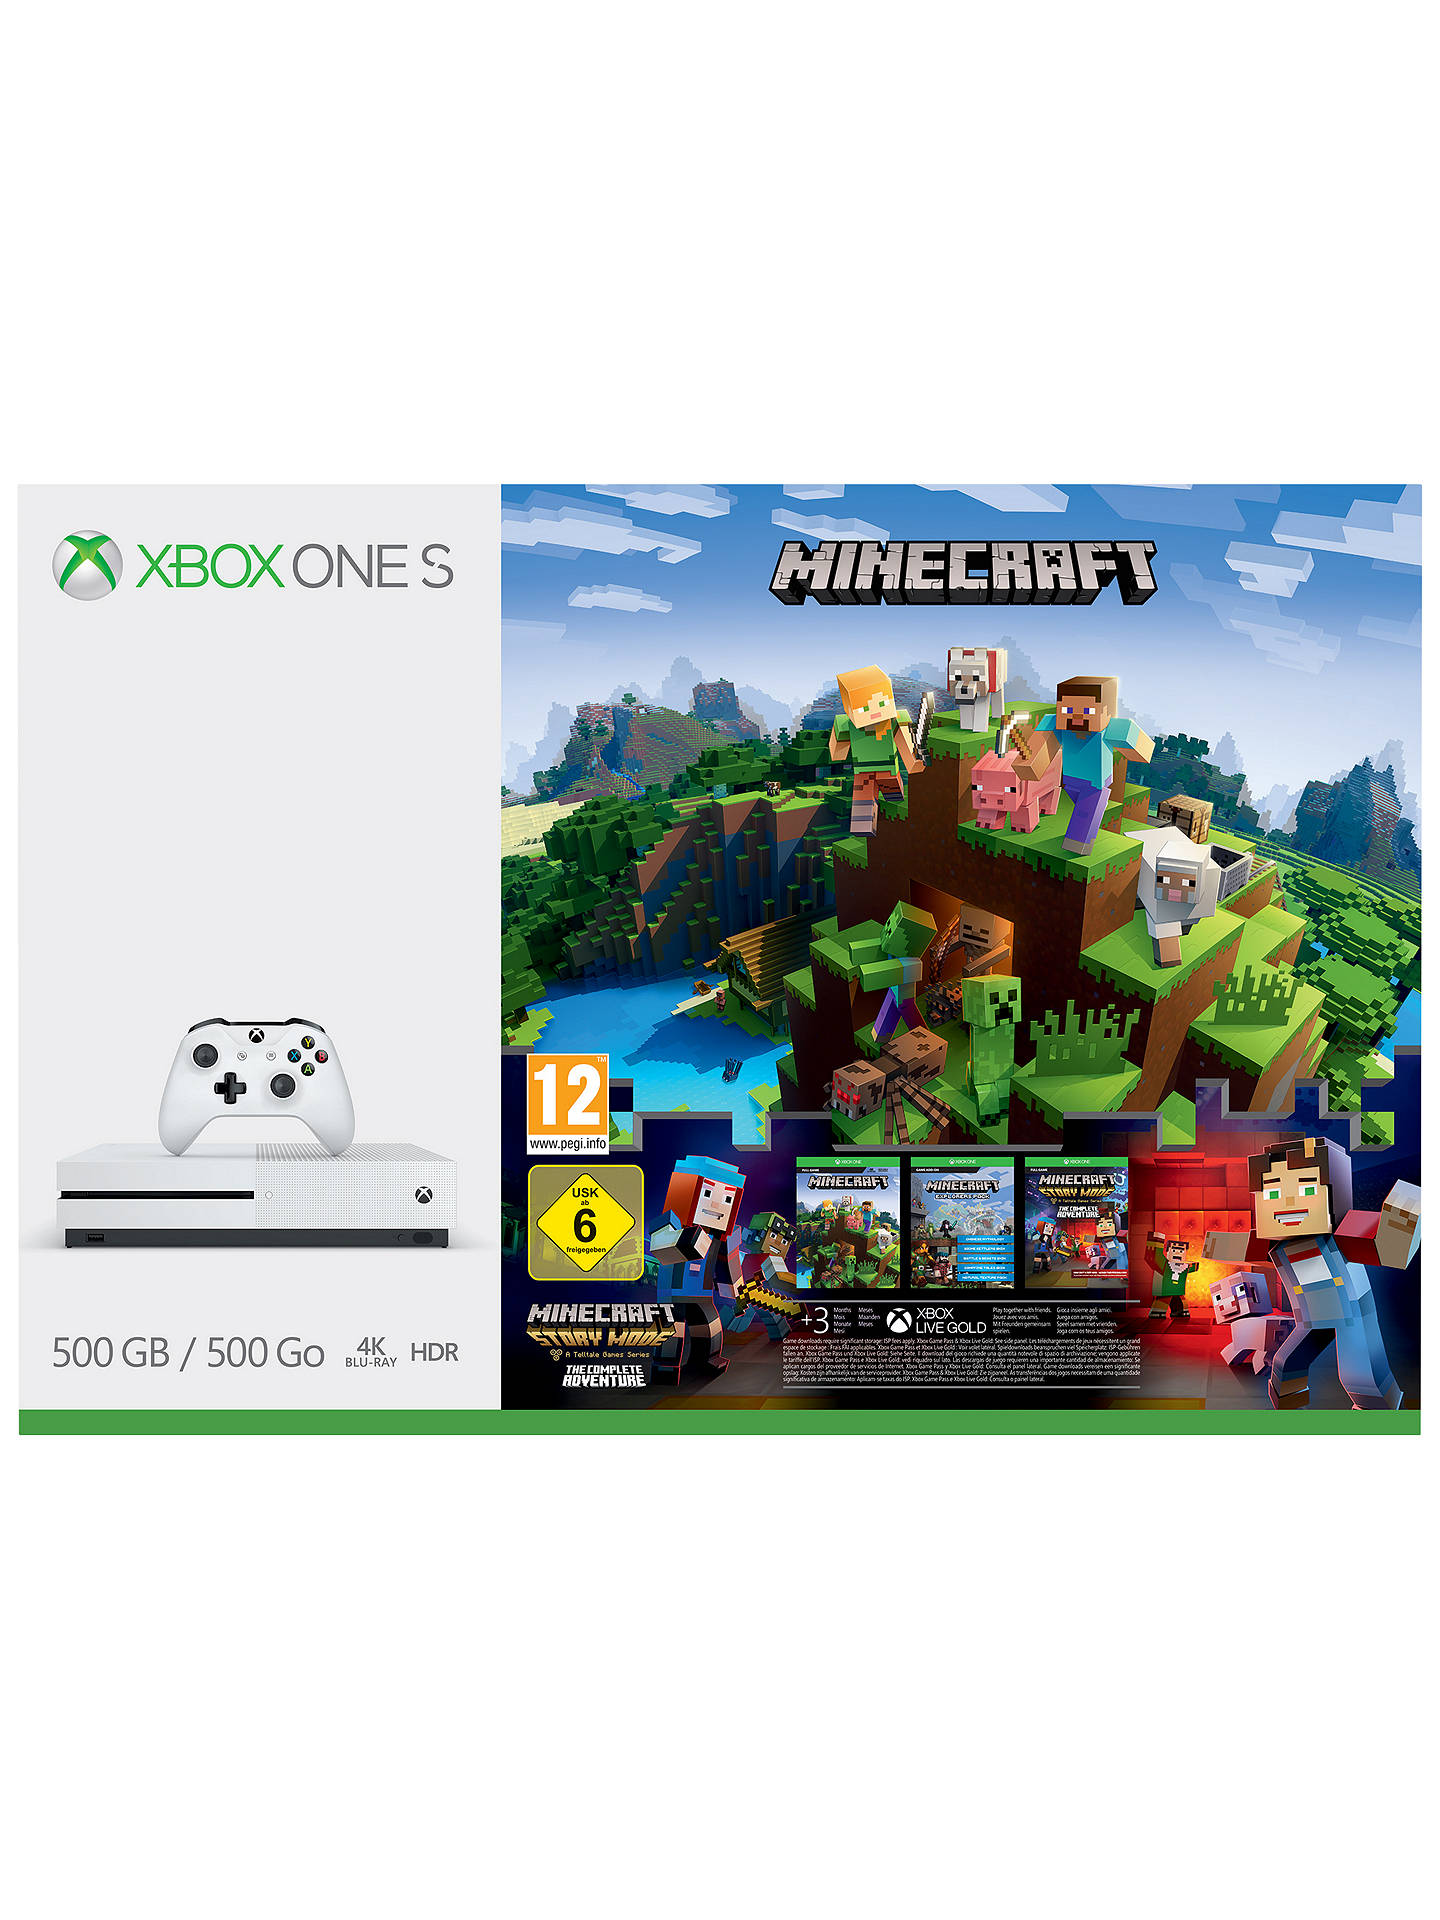 Microsoft Xbox One S Console, 8GB, with Minecraft Bundle at John